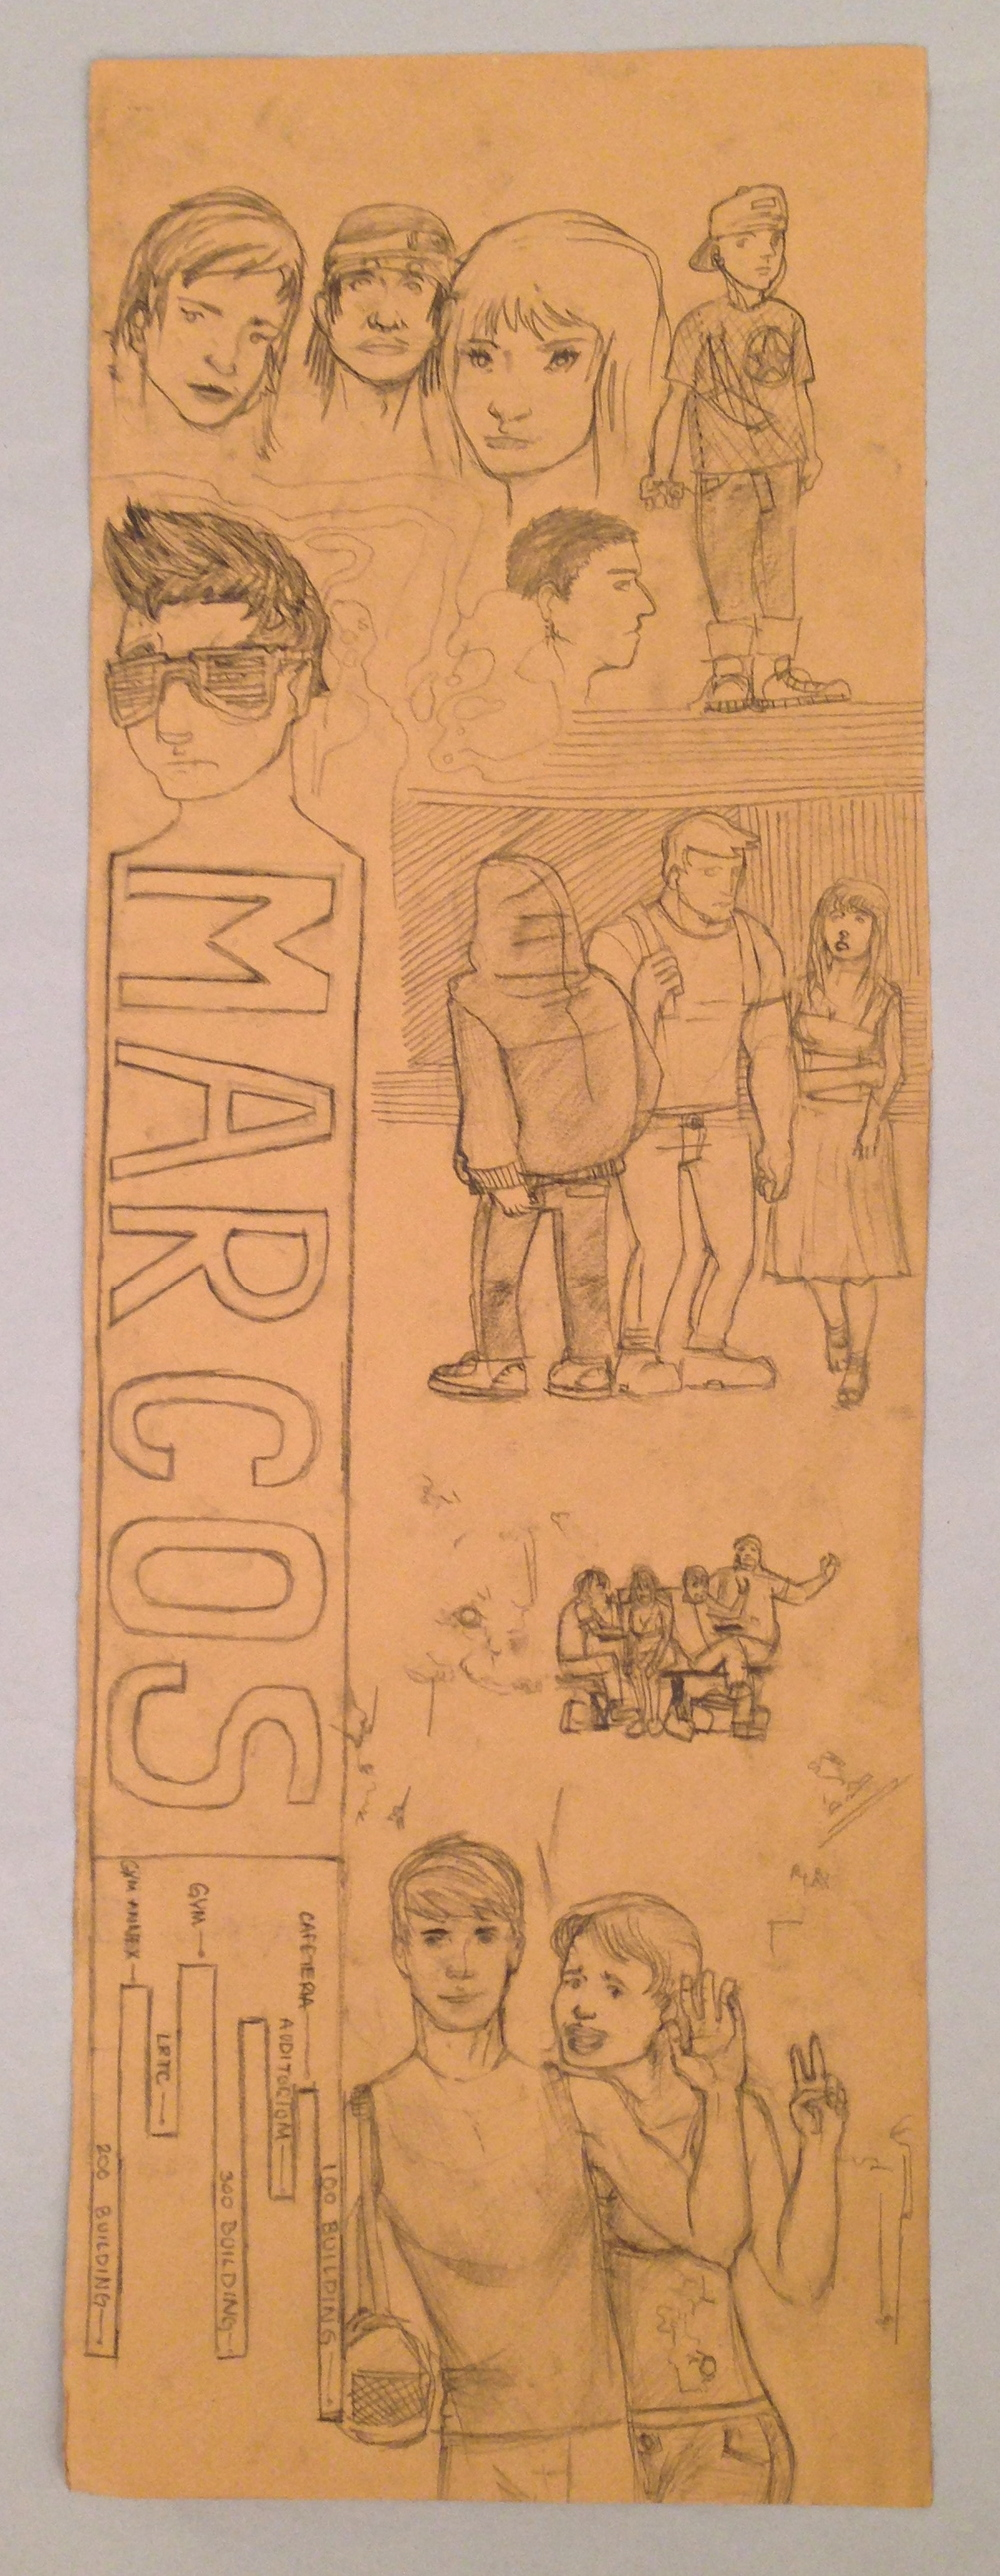 Student drawing of Marcos de Niza High School life